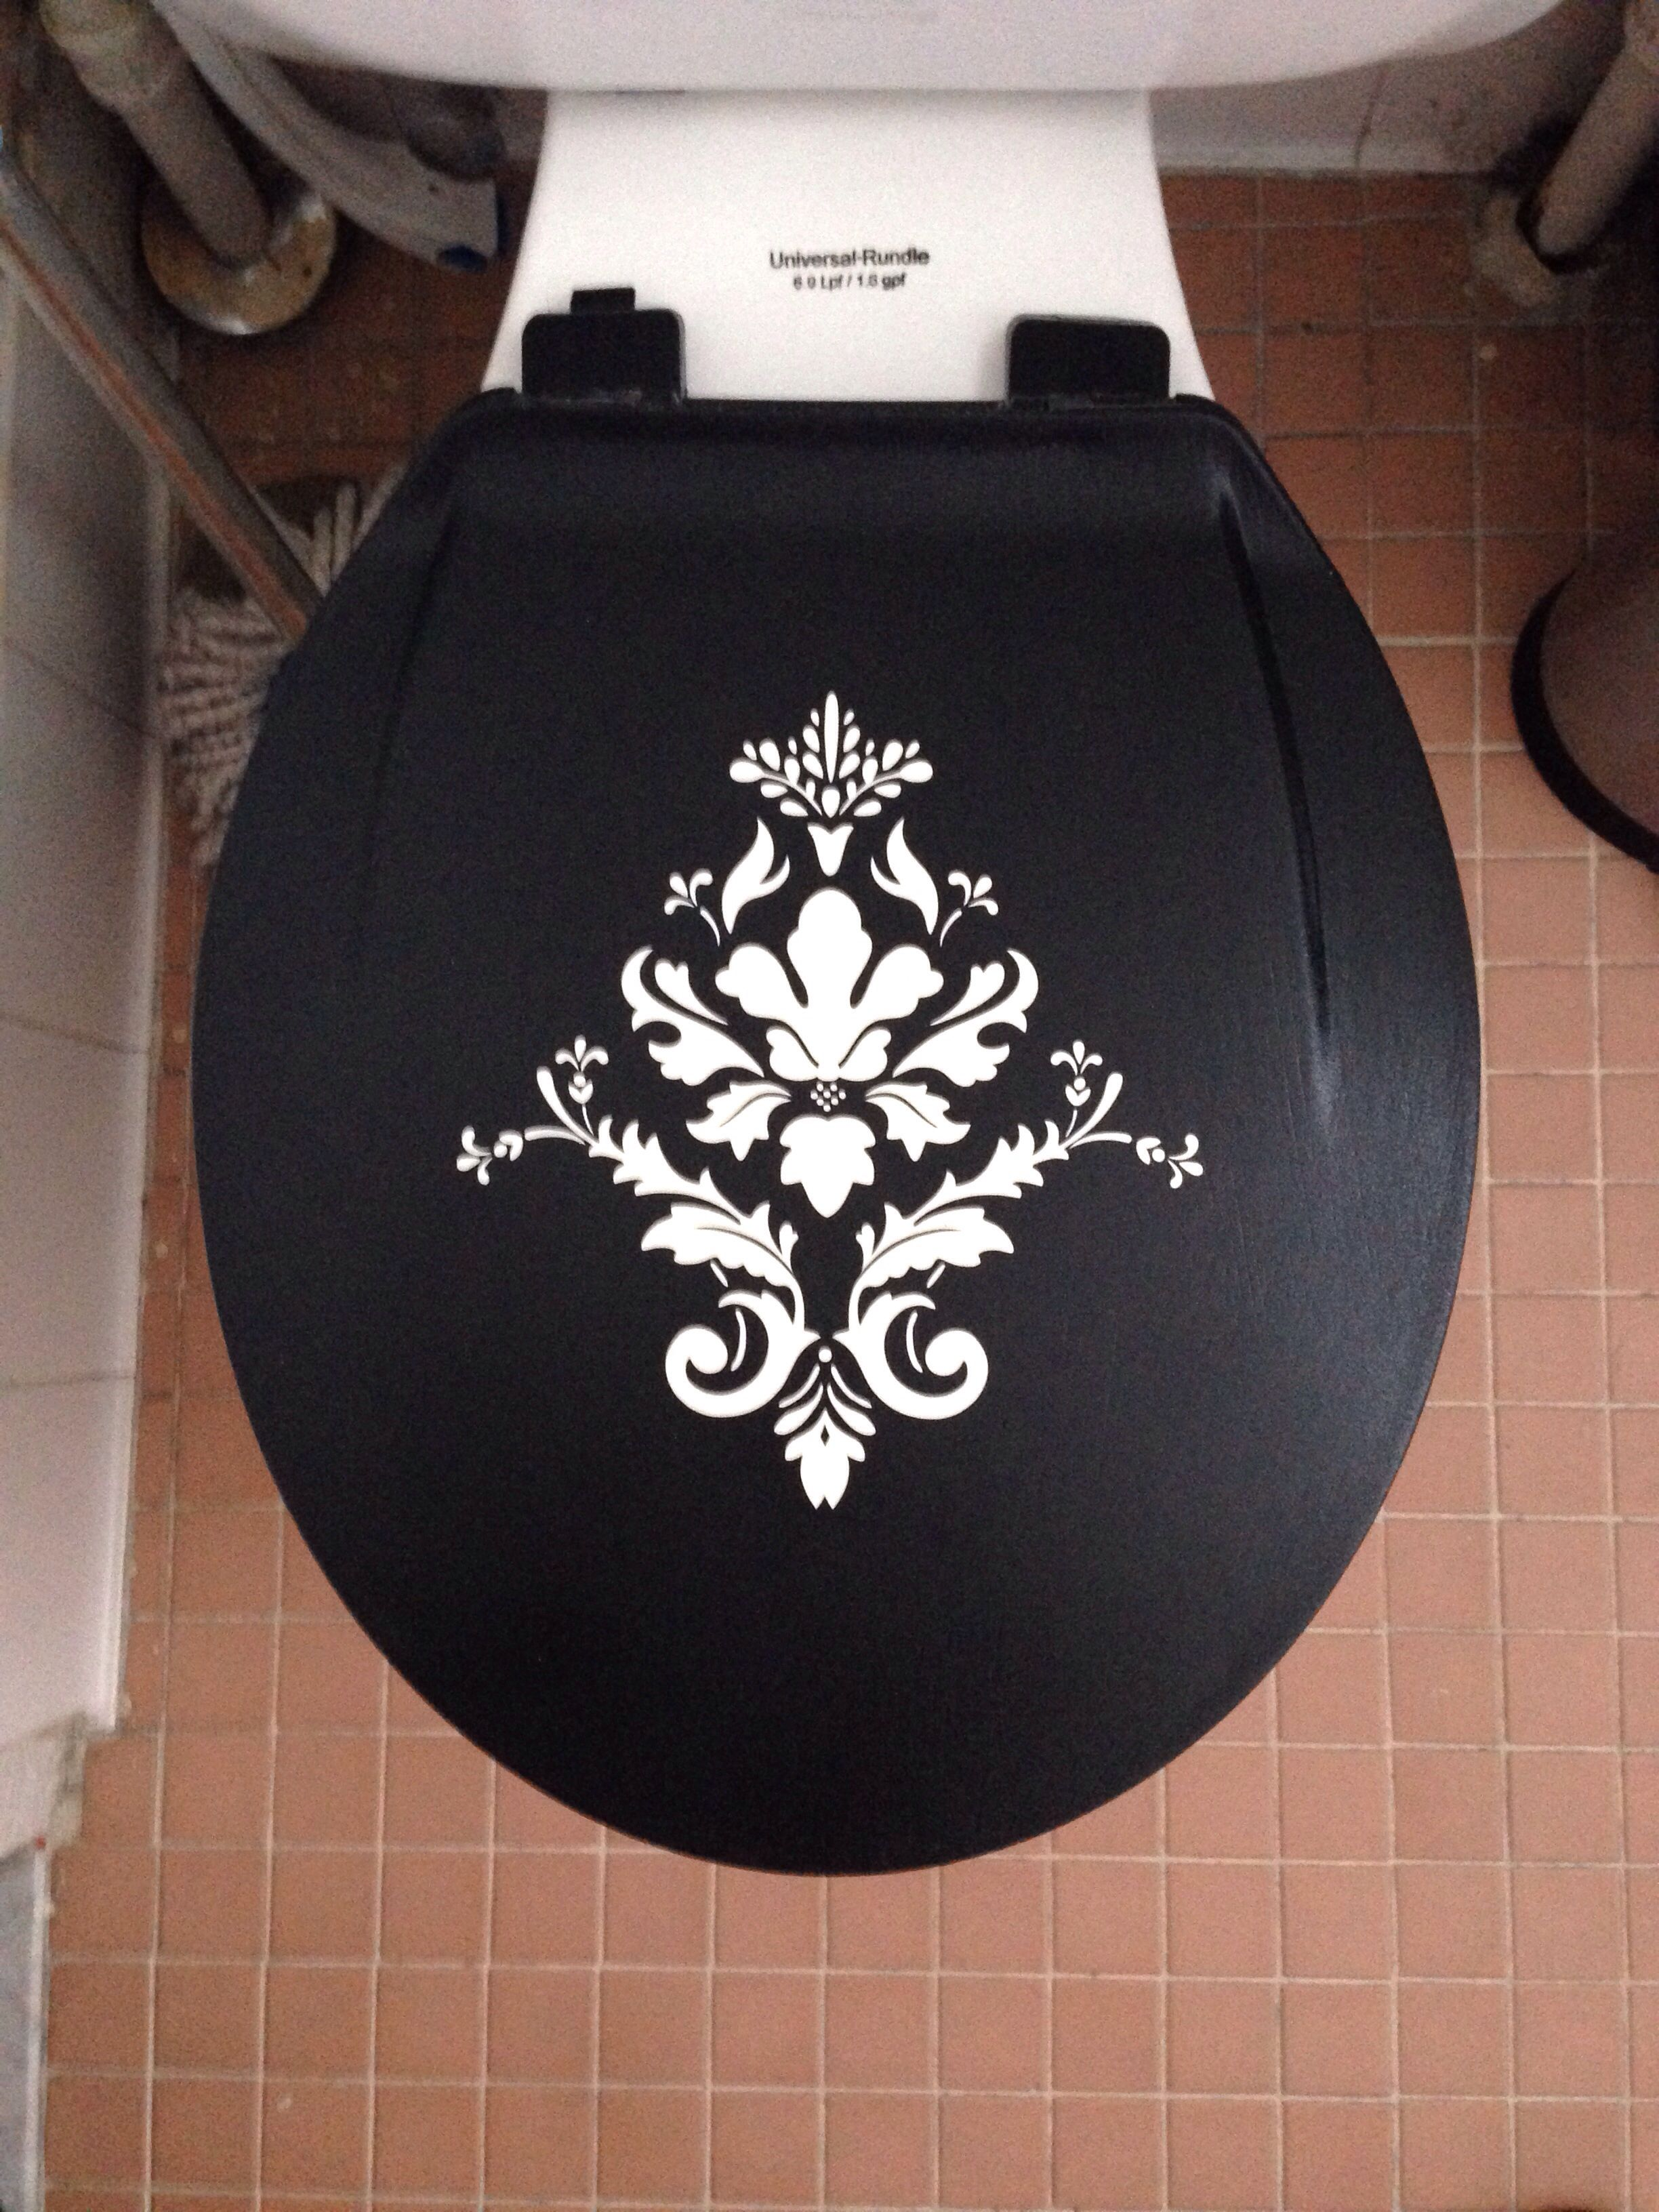 Revamp a boring toilet seat with vinyl decal  Seal it in Mod Podge Glitter Old crappy glitter mod podge